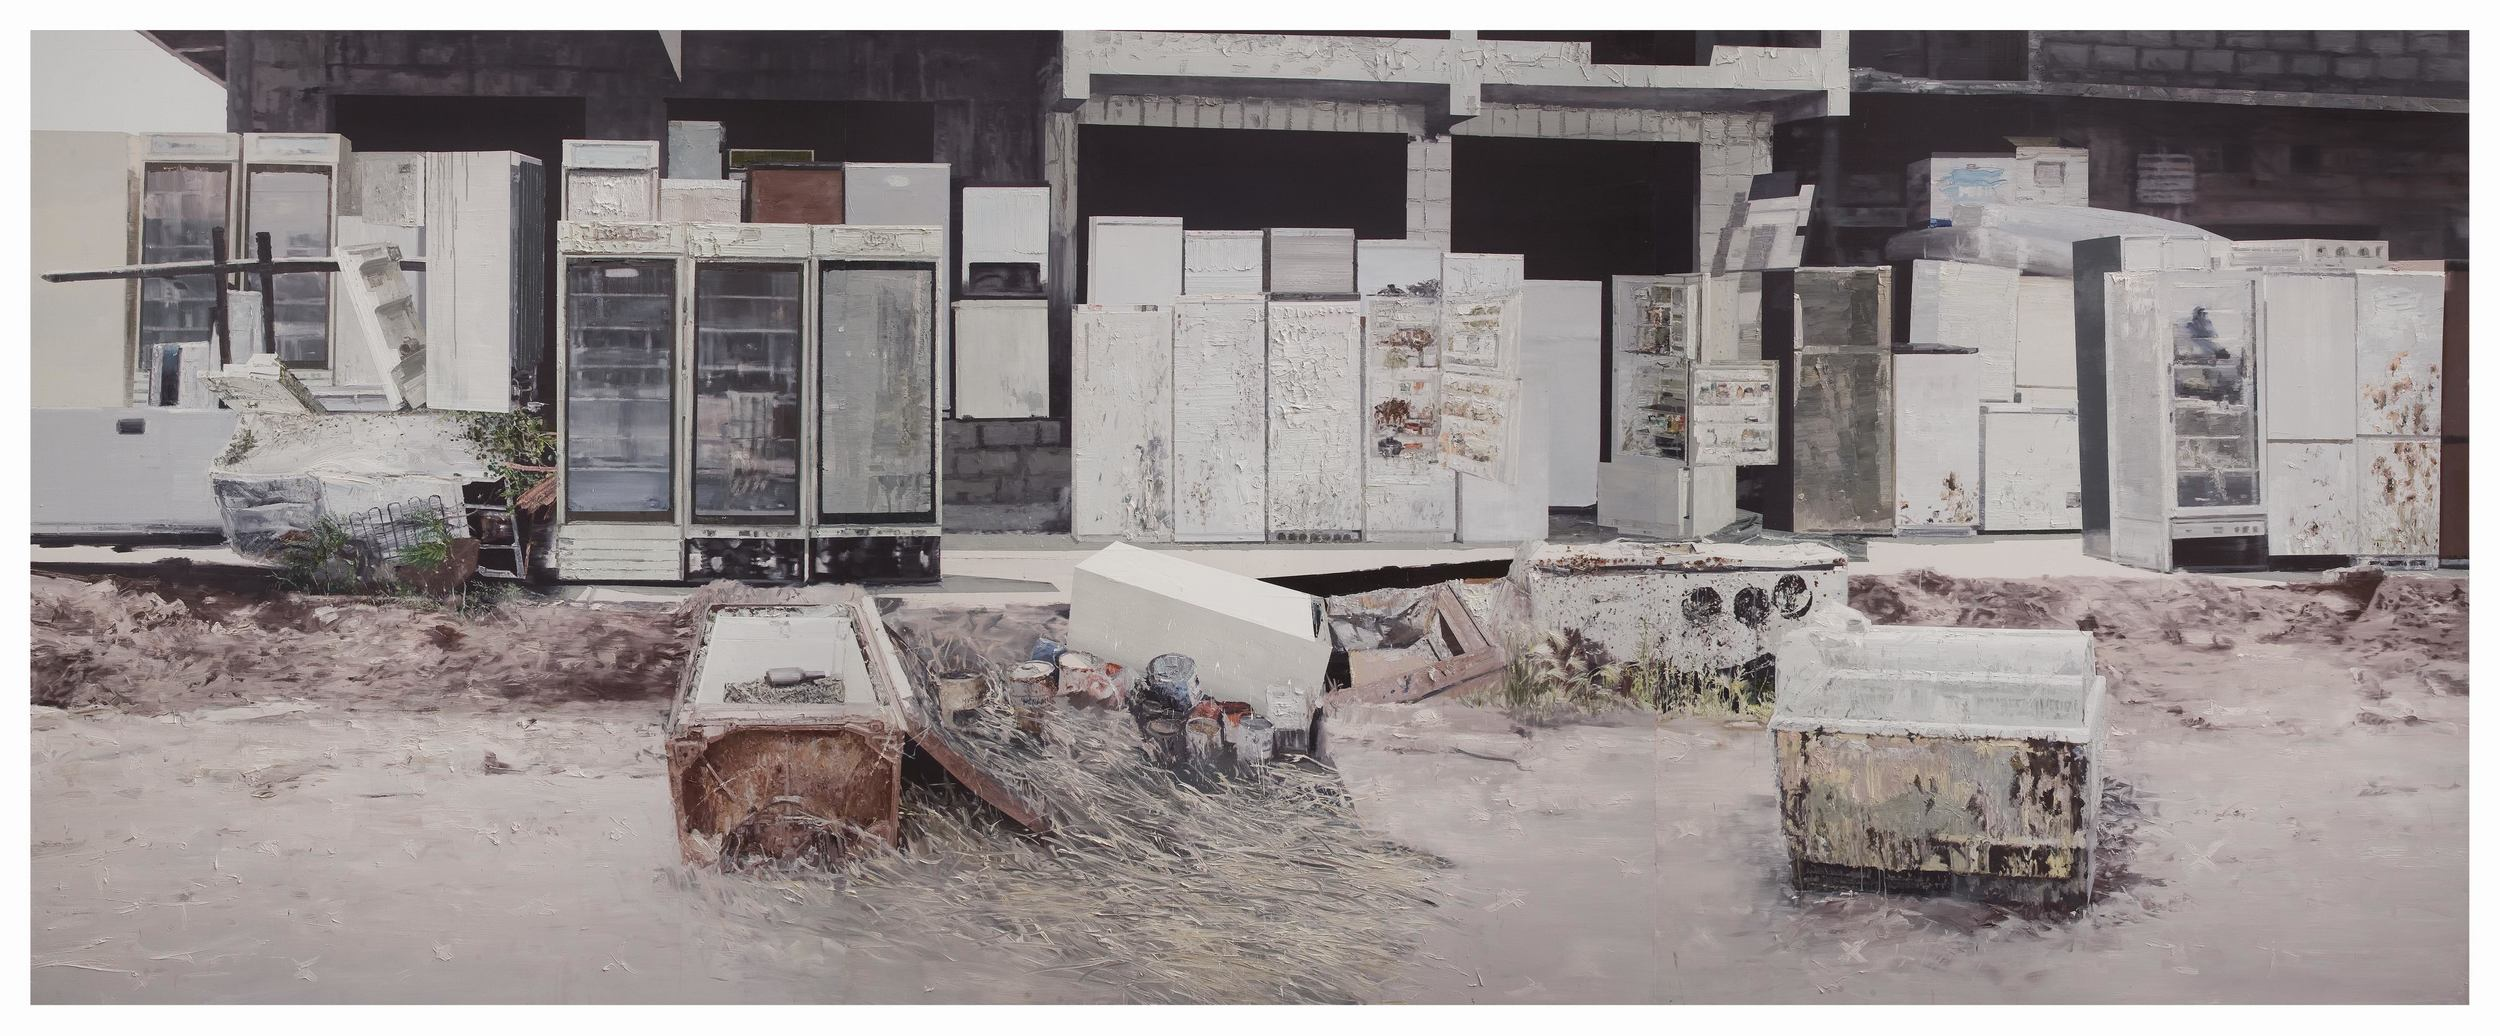 Li Qing 李青, White Group Portrait 白色群像, 2010, Oil on canvas 布面油画, 240 x 600 cm